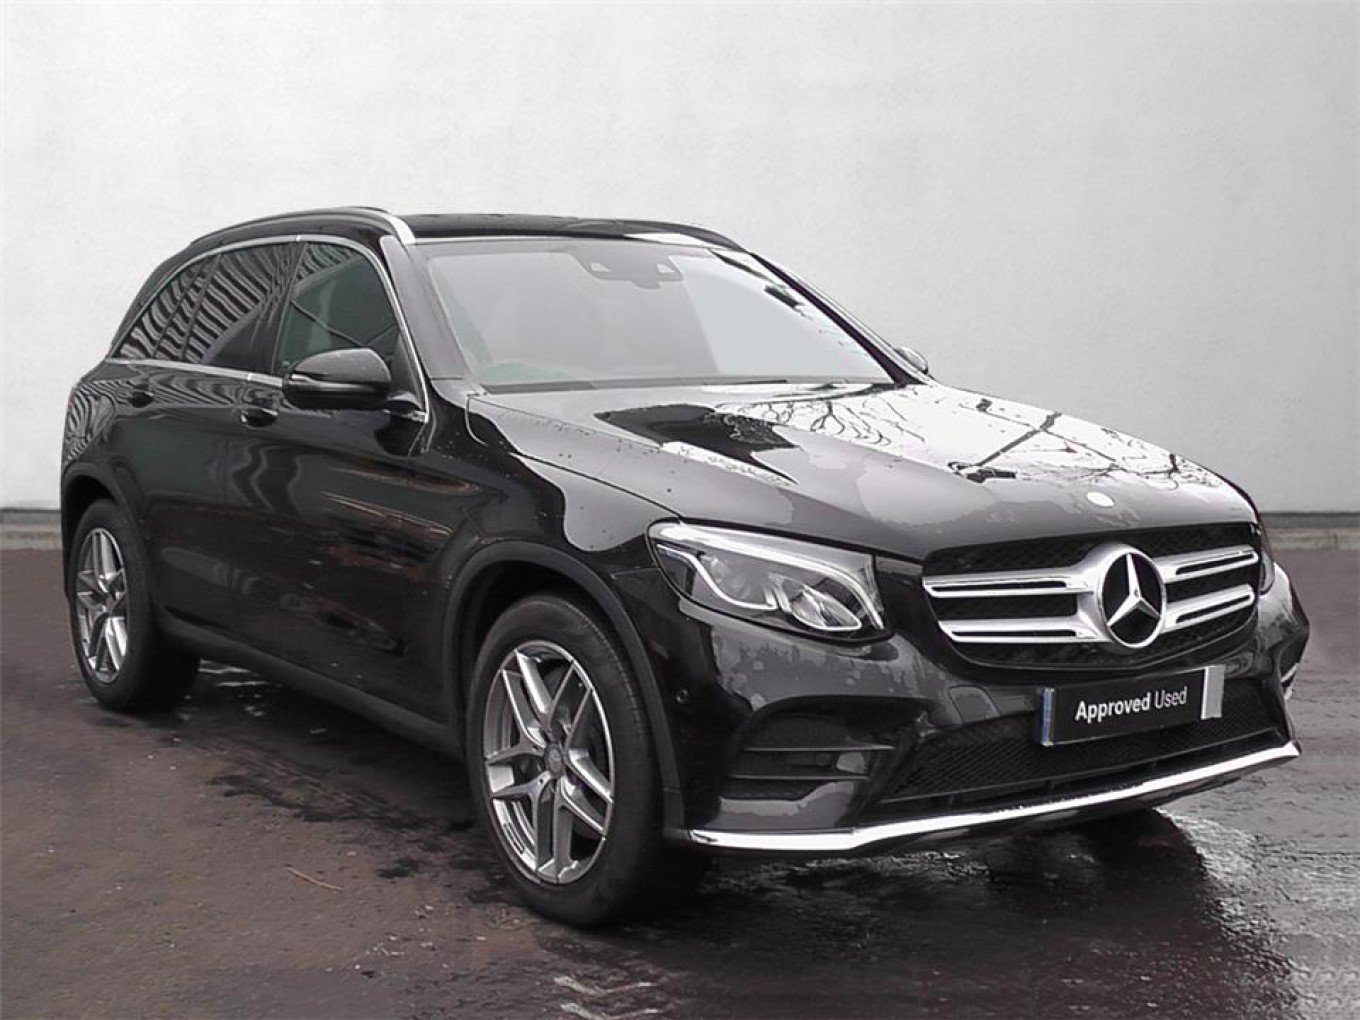 New Mercedes Benz >> GLC 250 d 4MATIC AMG Line